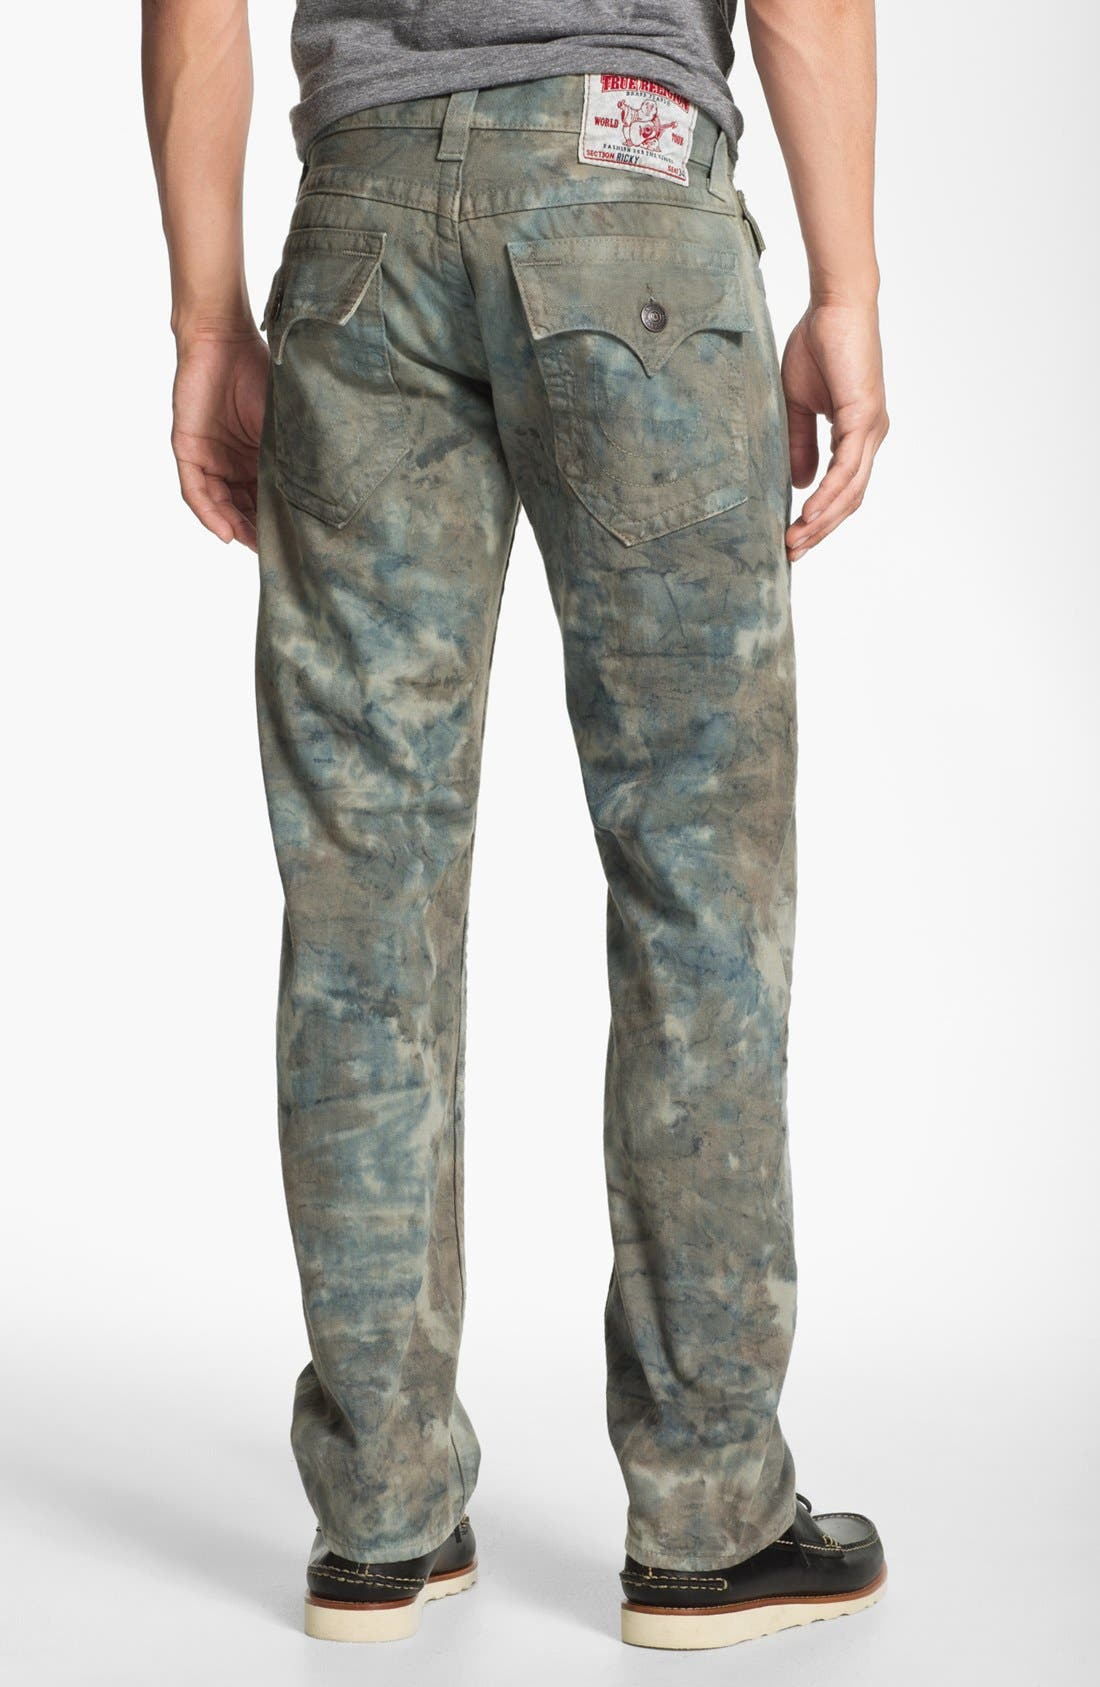 Main Image - True Religion Brand Jeans 'Ricky' Straight Leg Jeans (Olive)